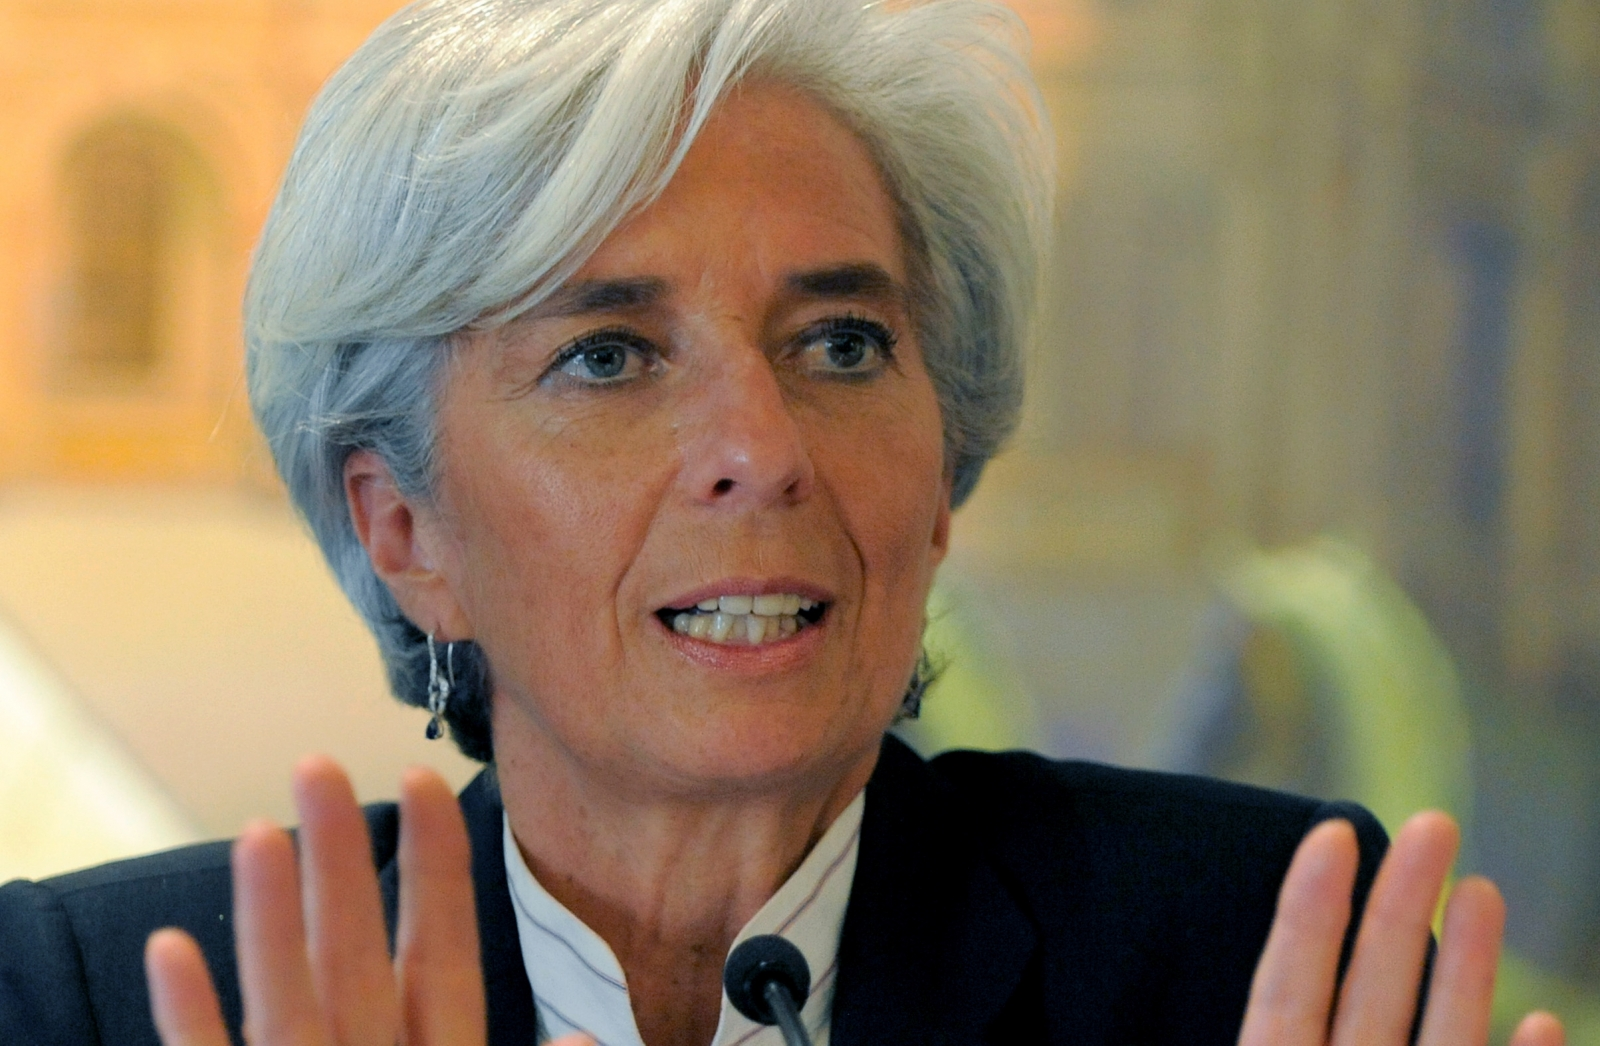 IMF Boss Christine Lagarde Charged Over Bernard Tapie Corruption Probe